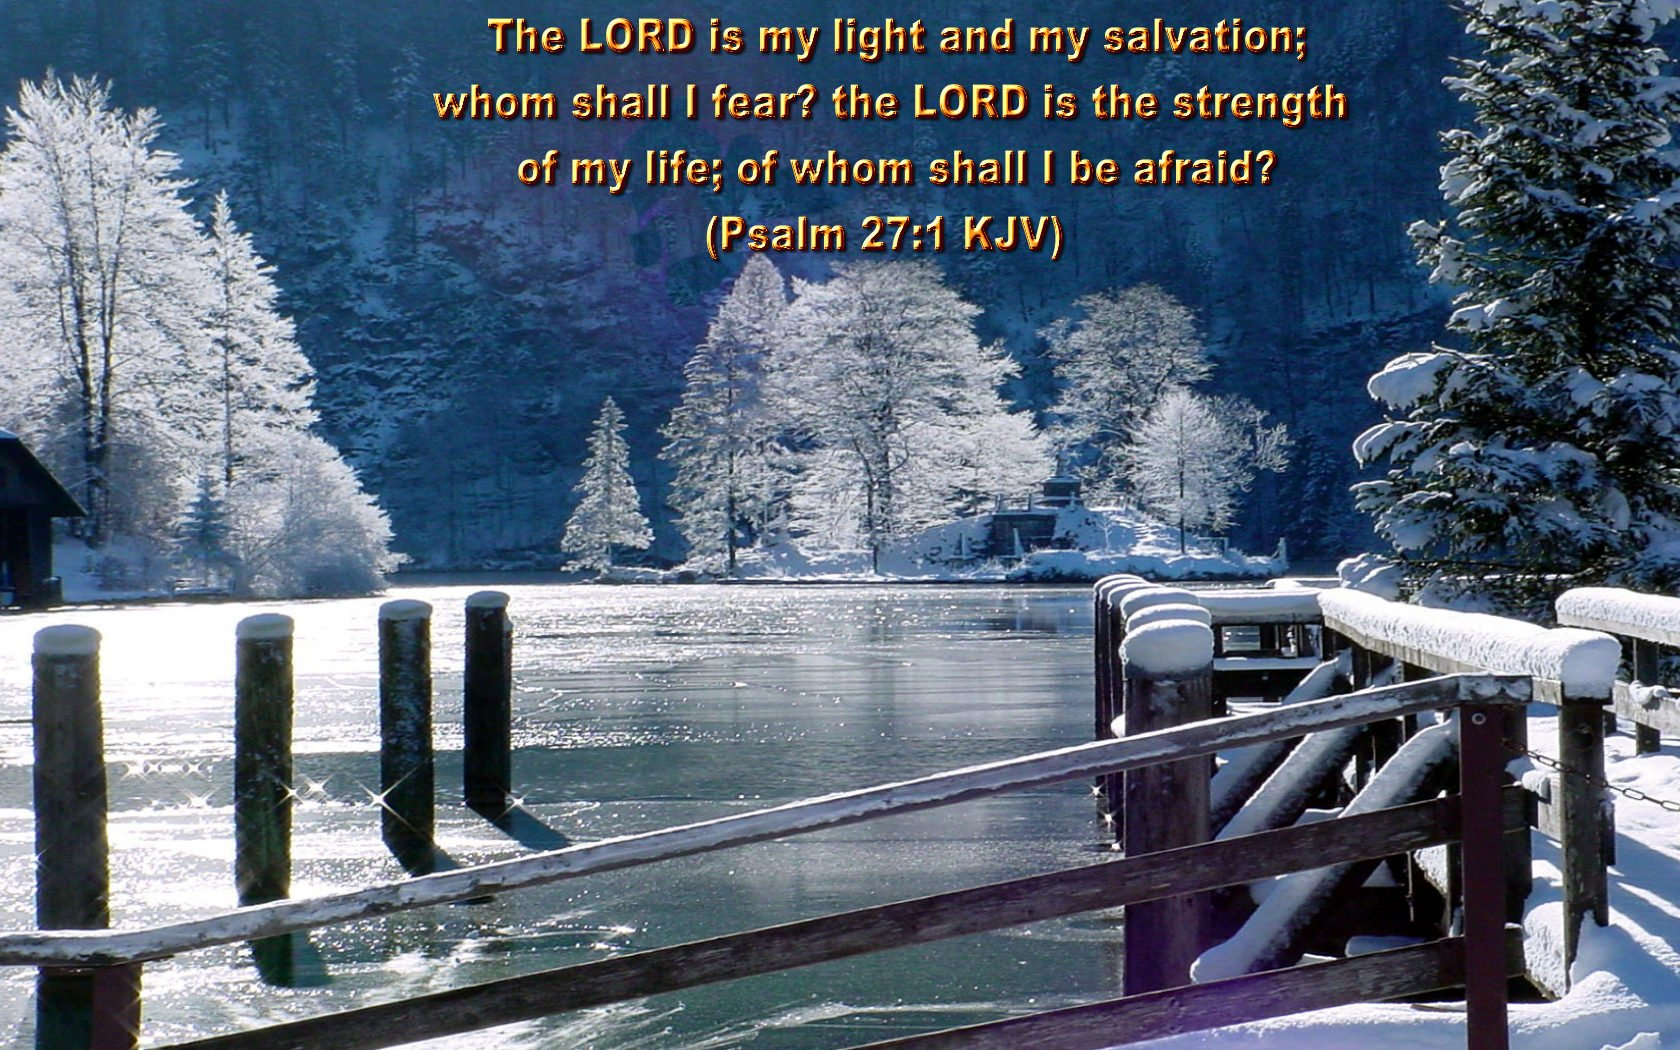 scenic wallpapers with bible verses 33 1680x1050